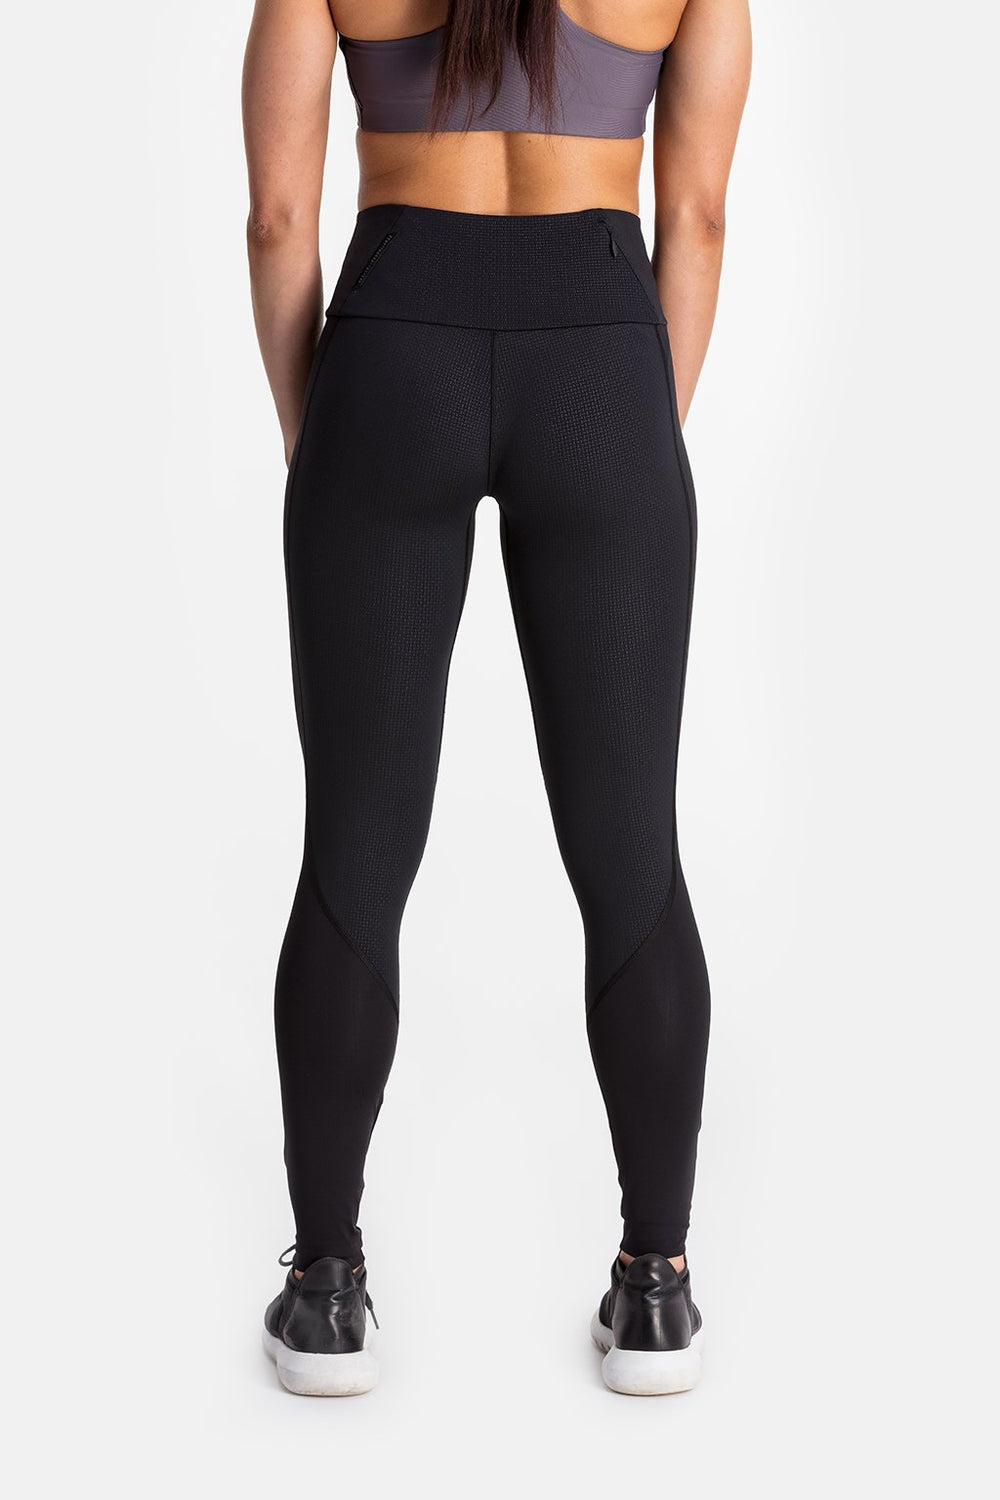 RYU Womens Cardio Tight in Black